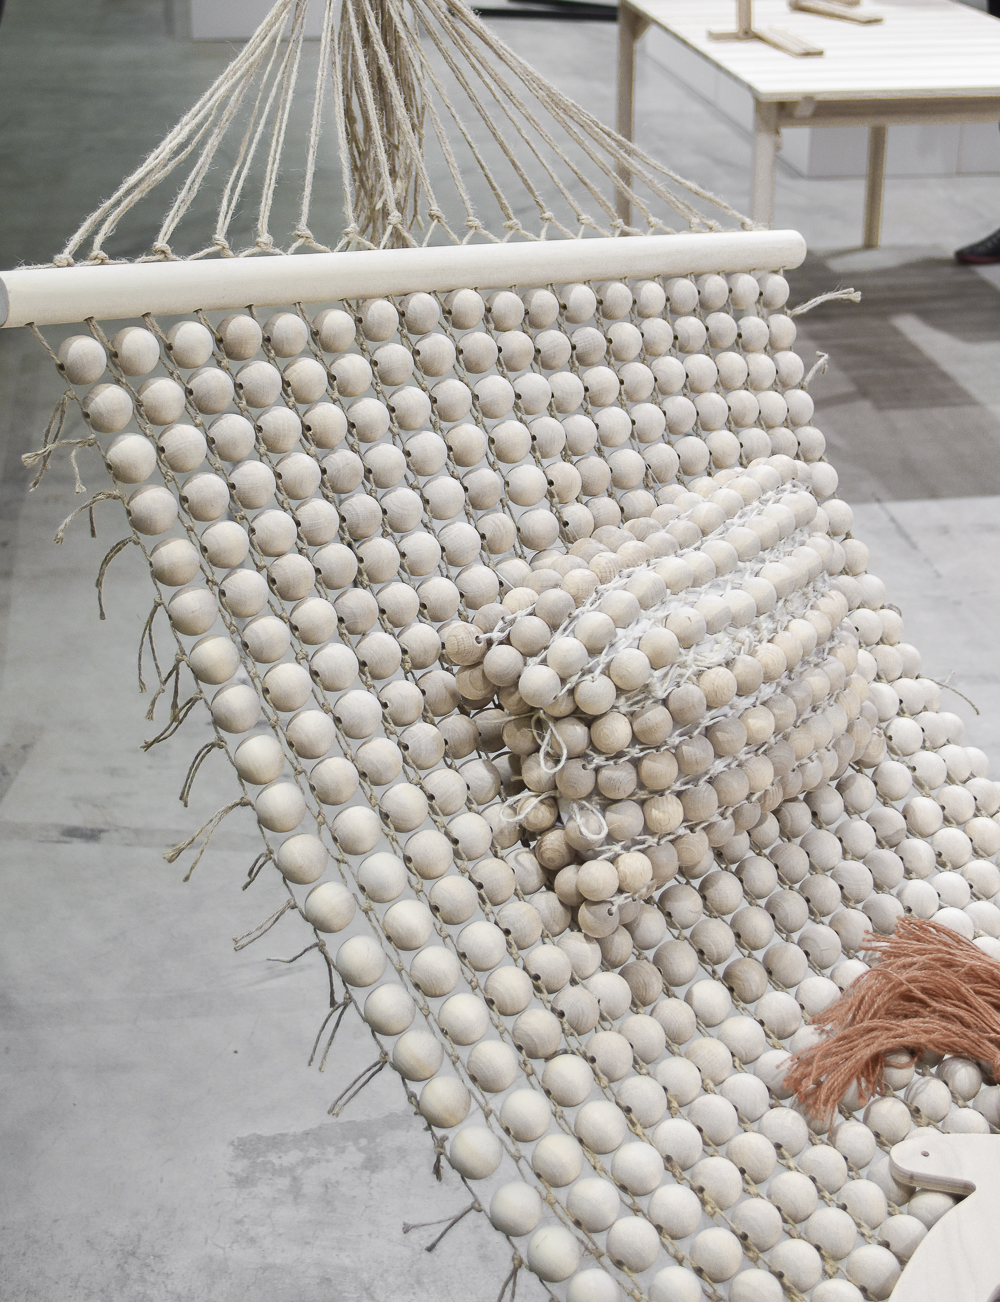 Eco hammock, made of wooden beads